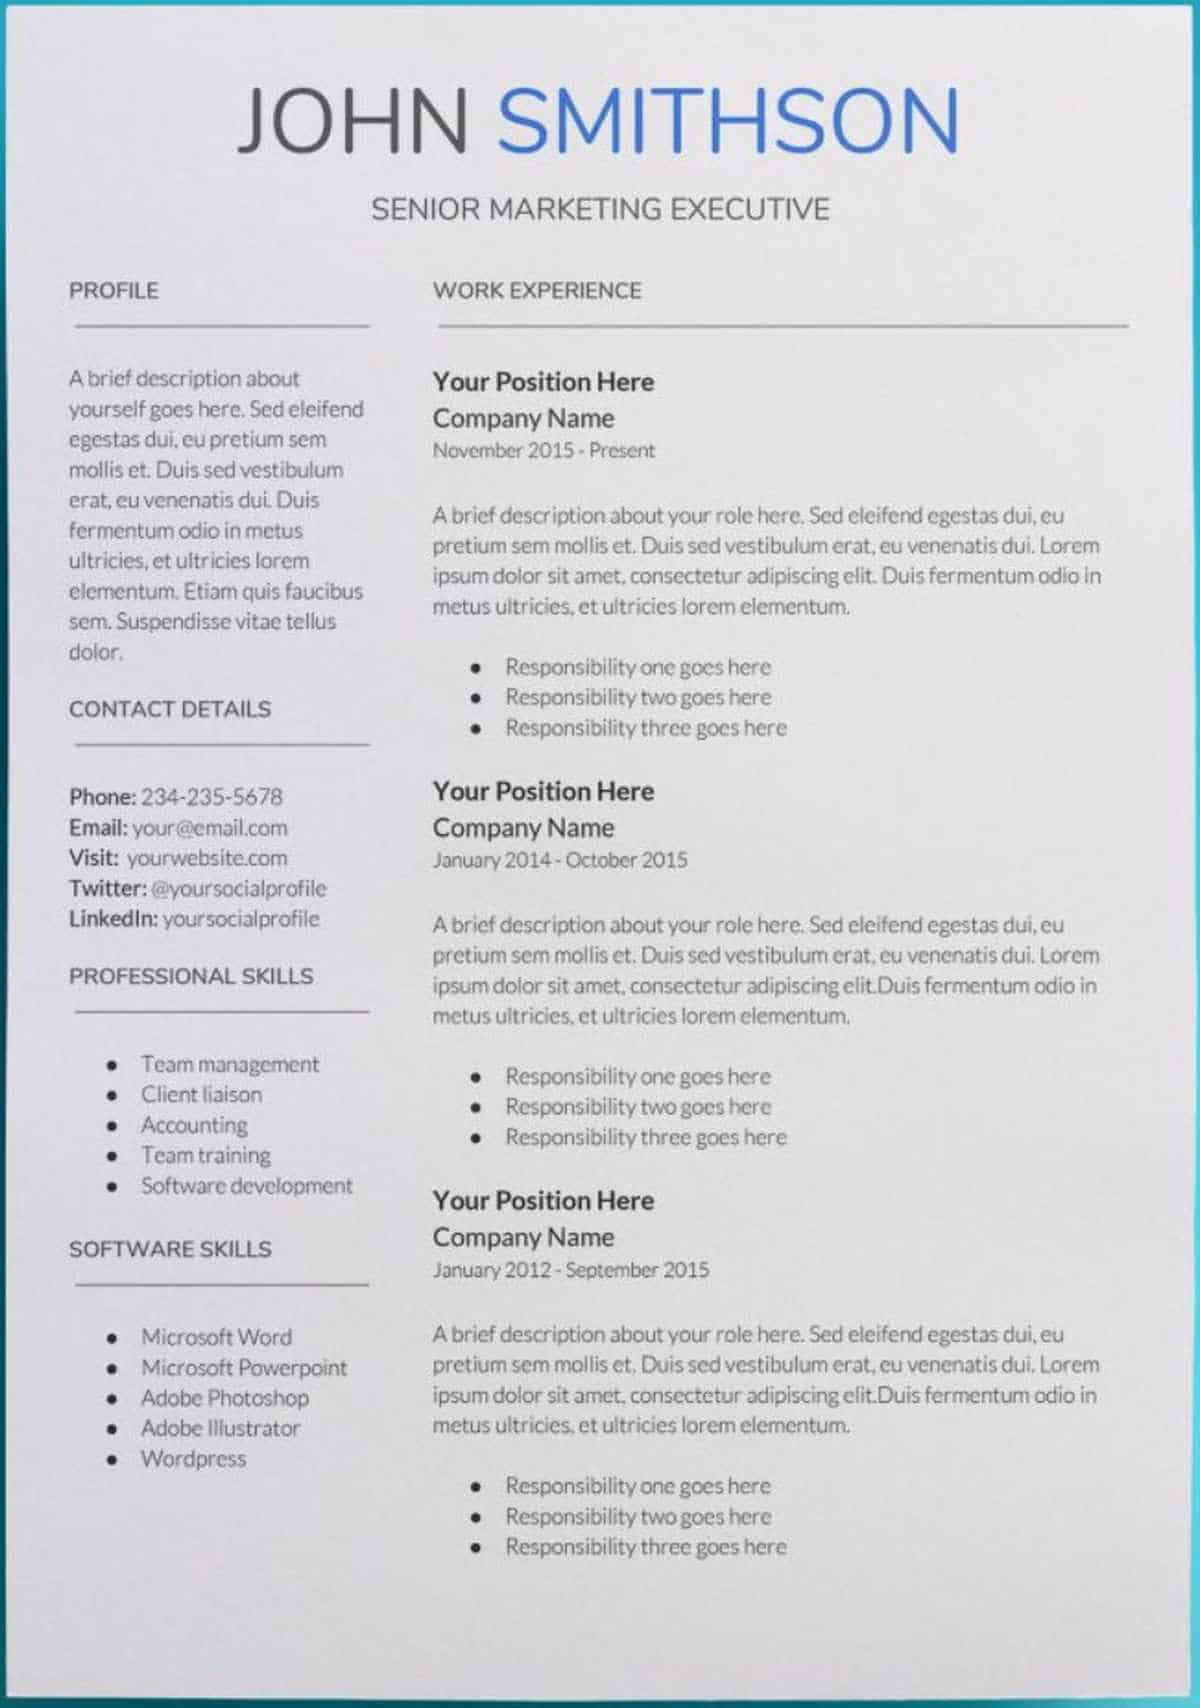 google docs resume templates downloadable pdfs making on saturn template free objective Resume Making A Resume On Google Docs